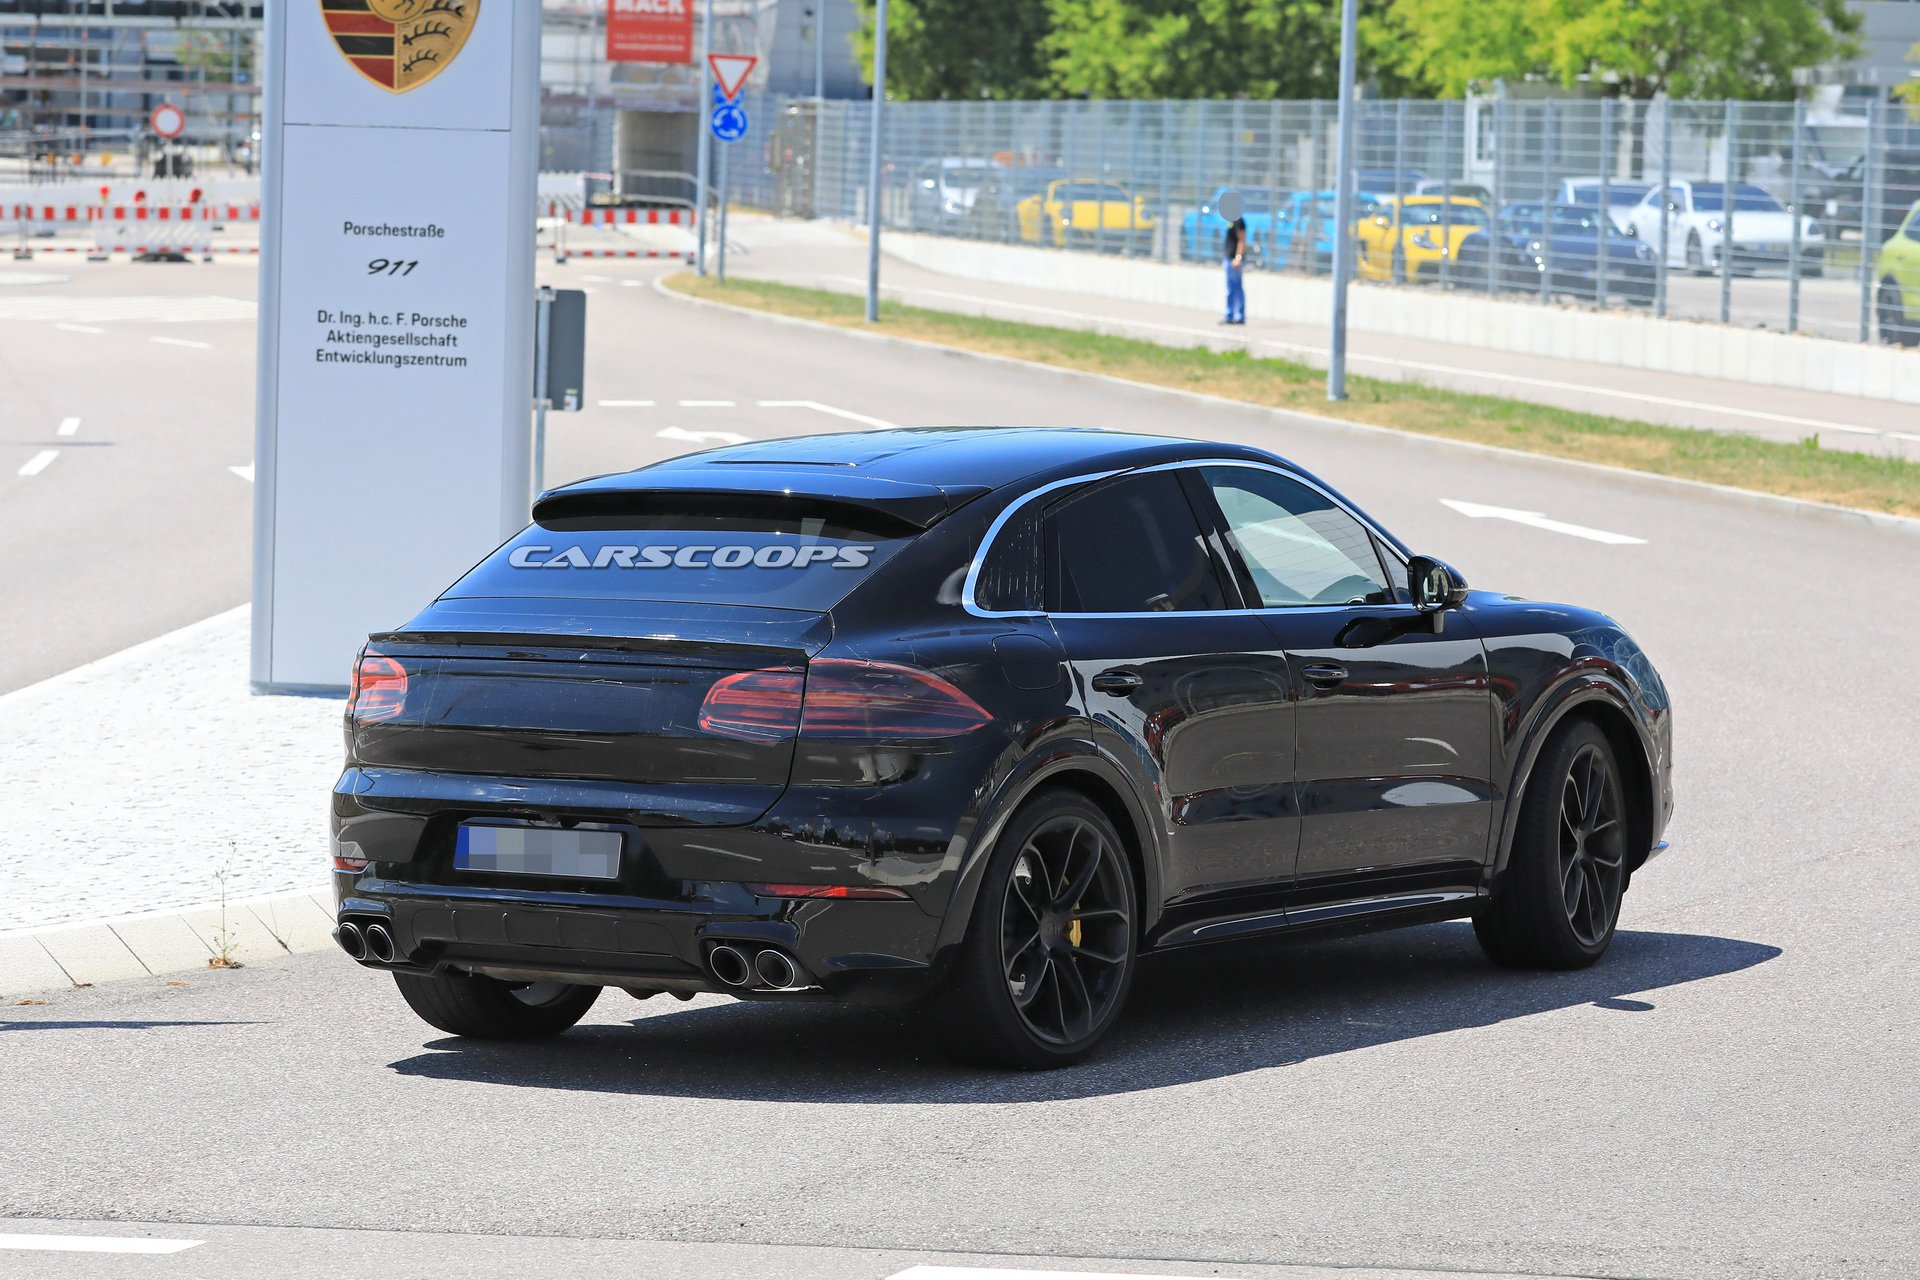 7c676ba8-porsche-cayenne-coupe-first-spy-16.jpg